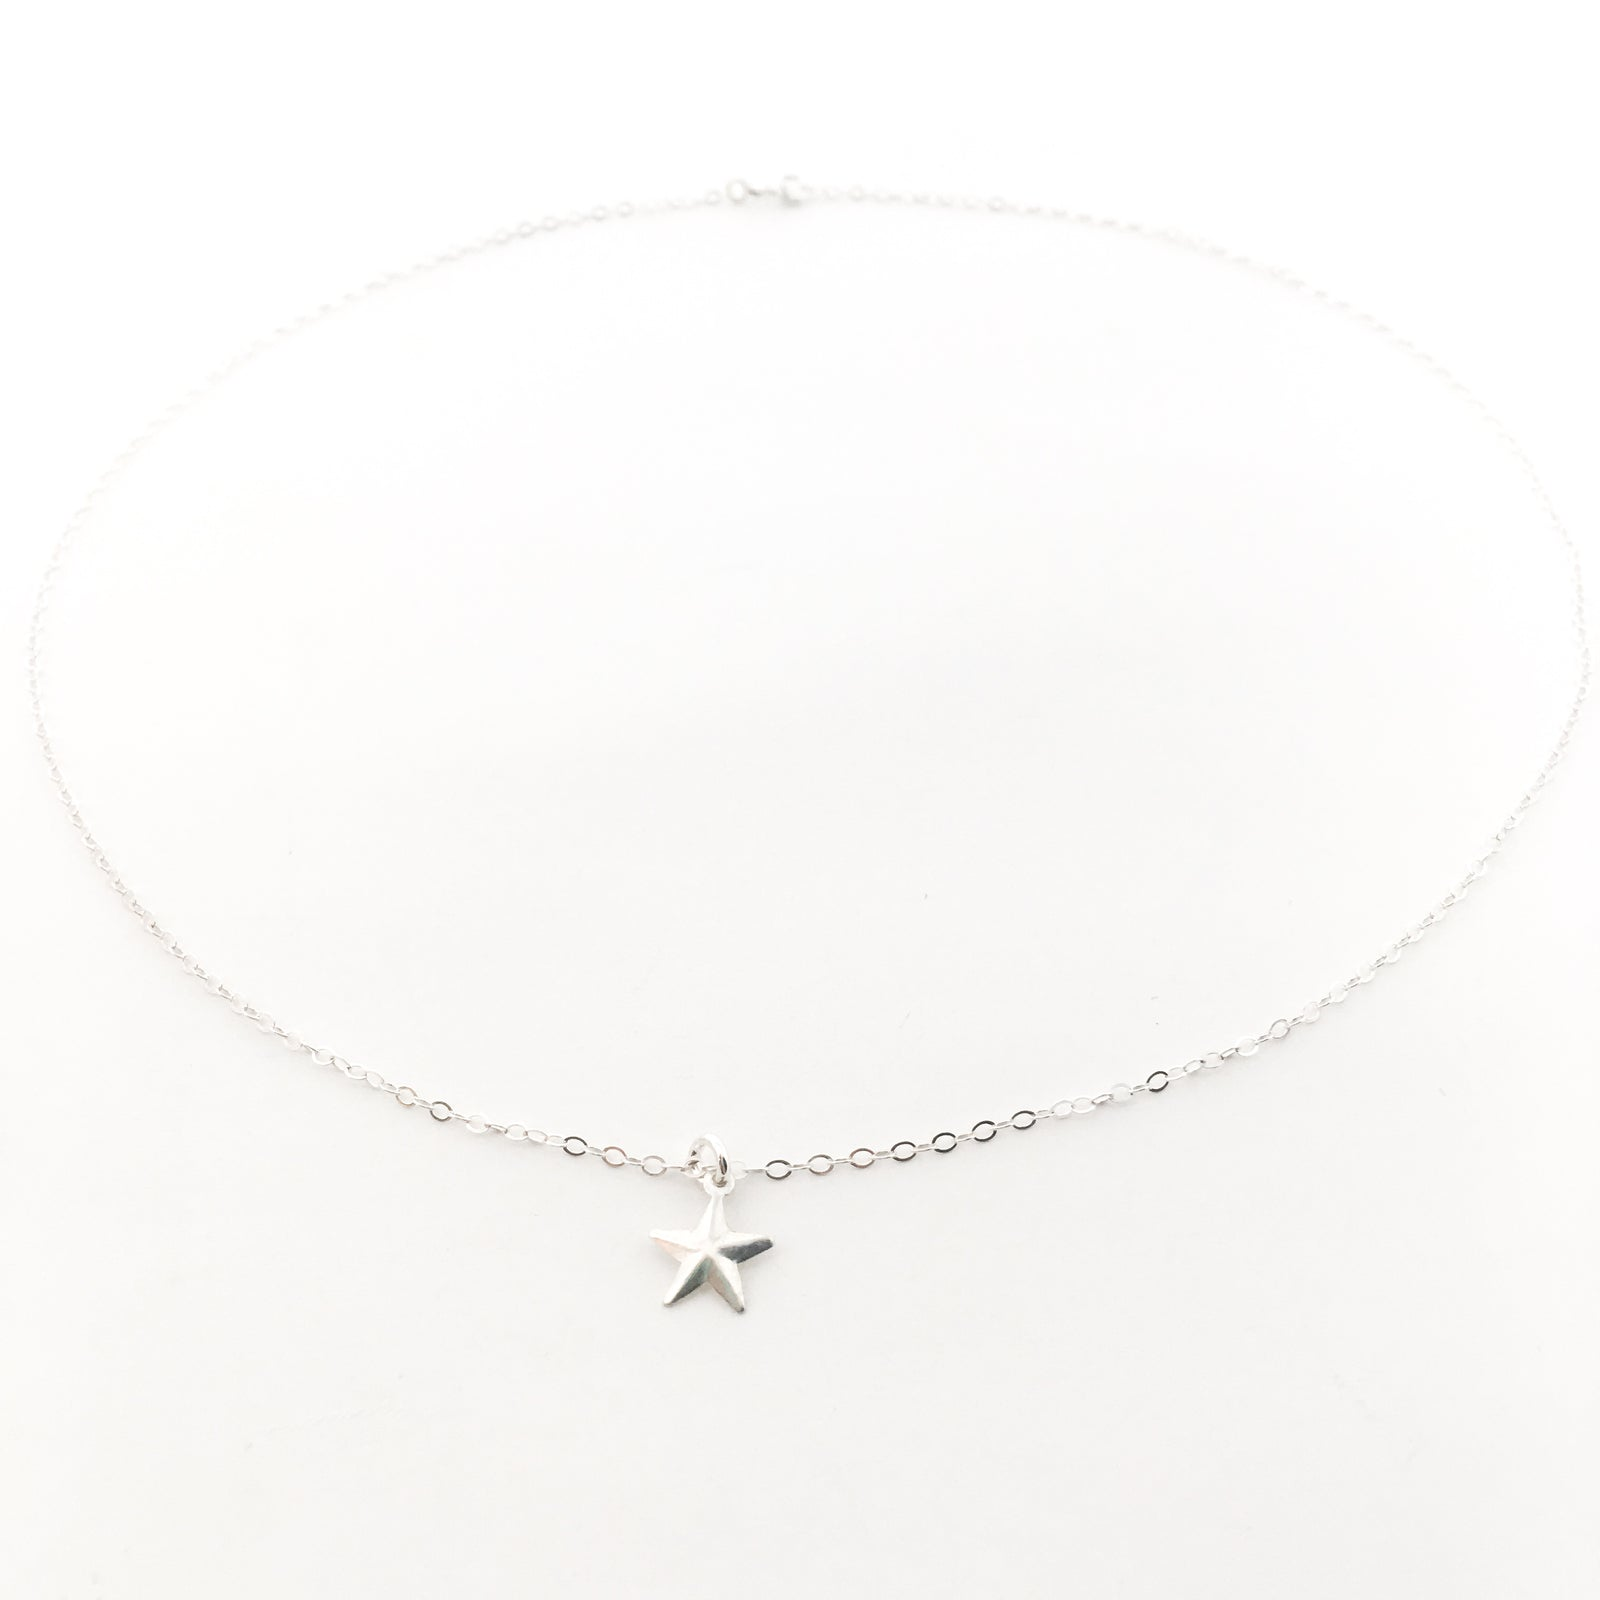 RUSTIC STAR NECKLACE | STERLING SILVER